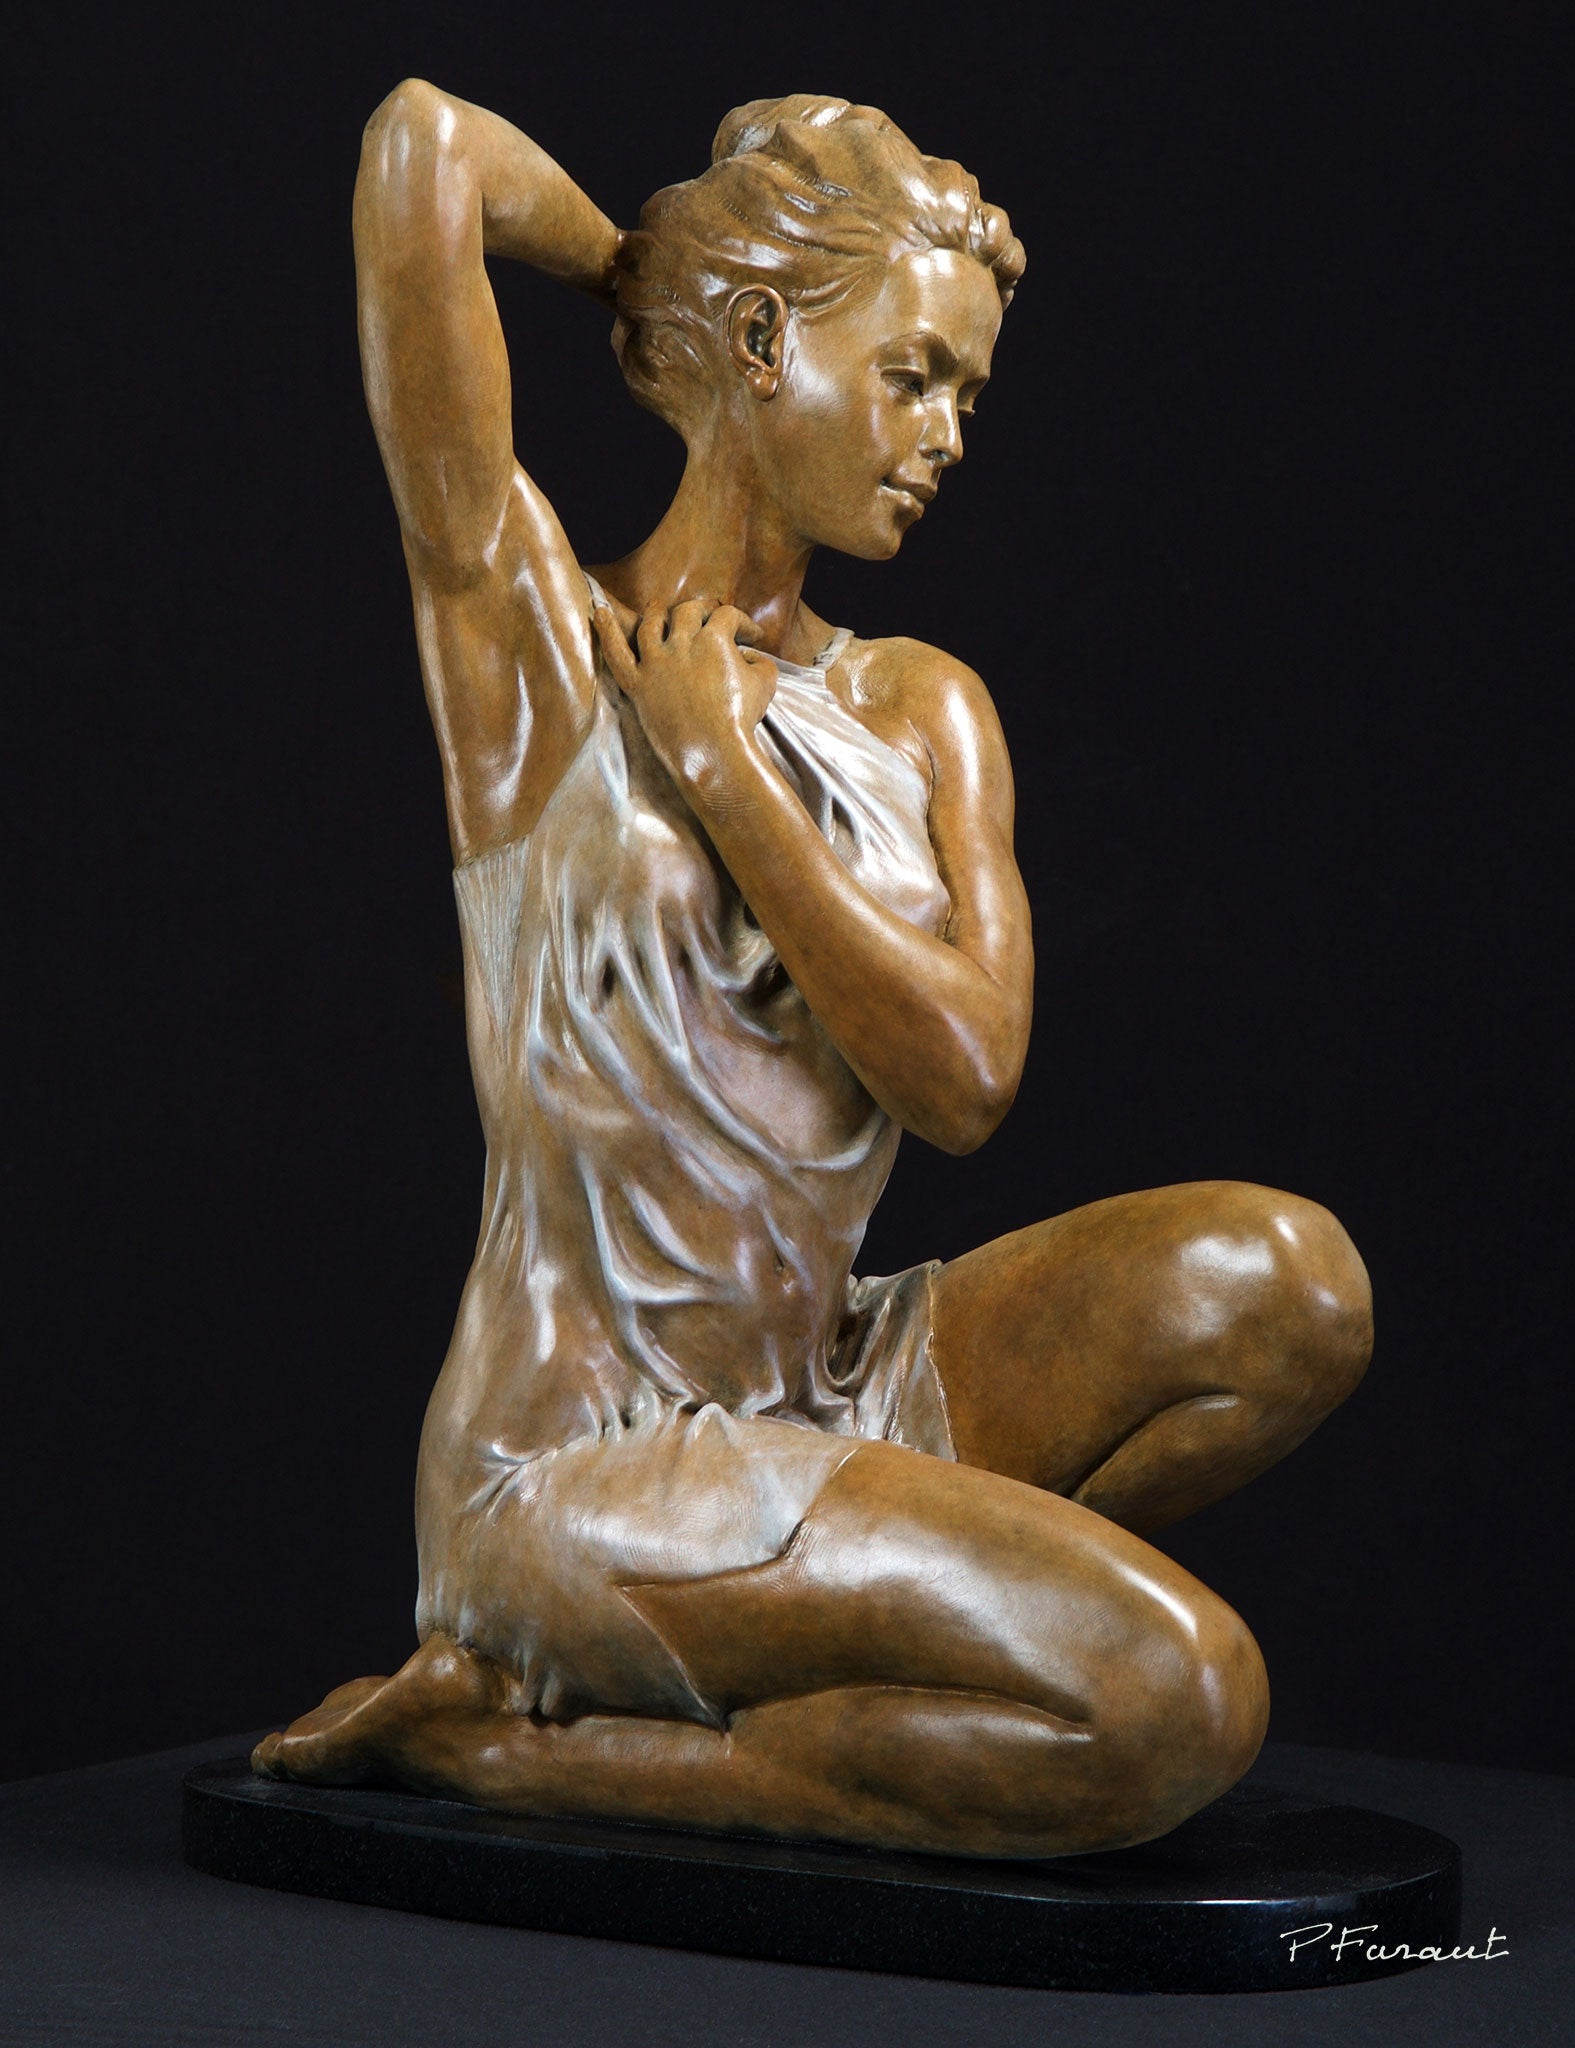 bronze sculpture of seated woman in sheer nightgown Maybe Tomorrow by Philippe Faraut